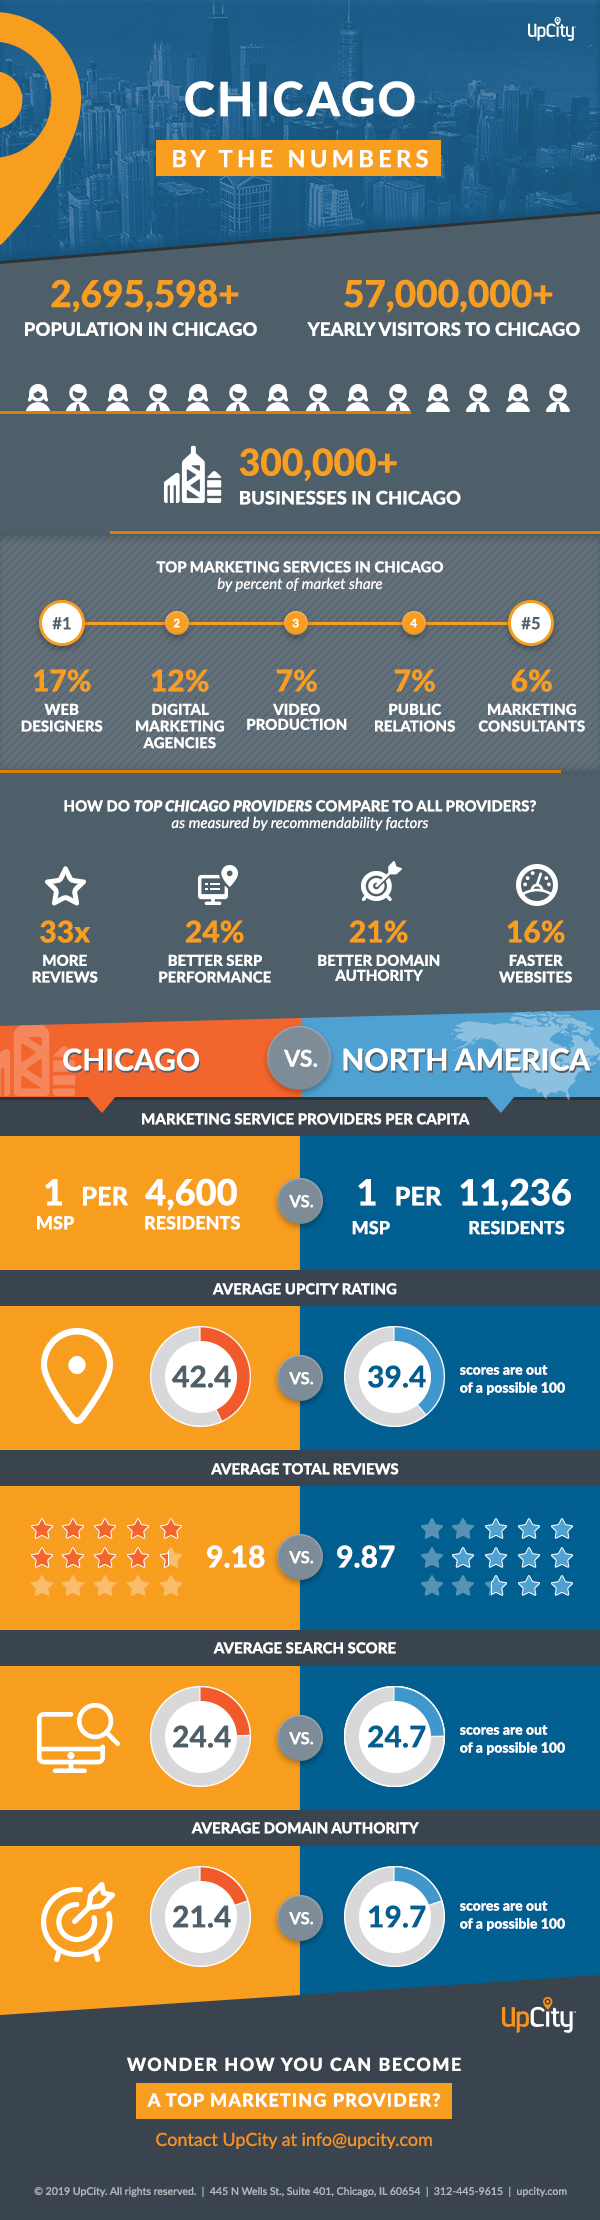 UpCity Chicago by the Numbers-Get Insights into Top Performing Marketers in Chicago